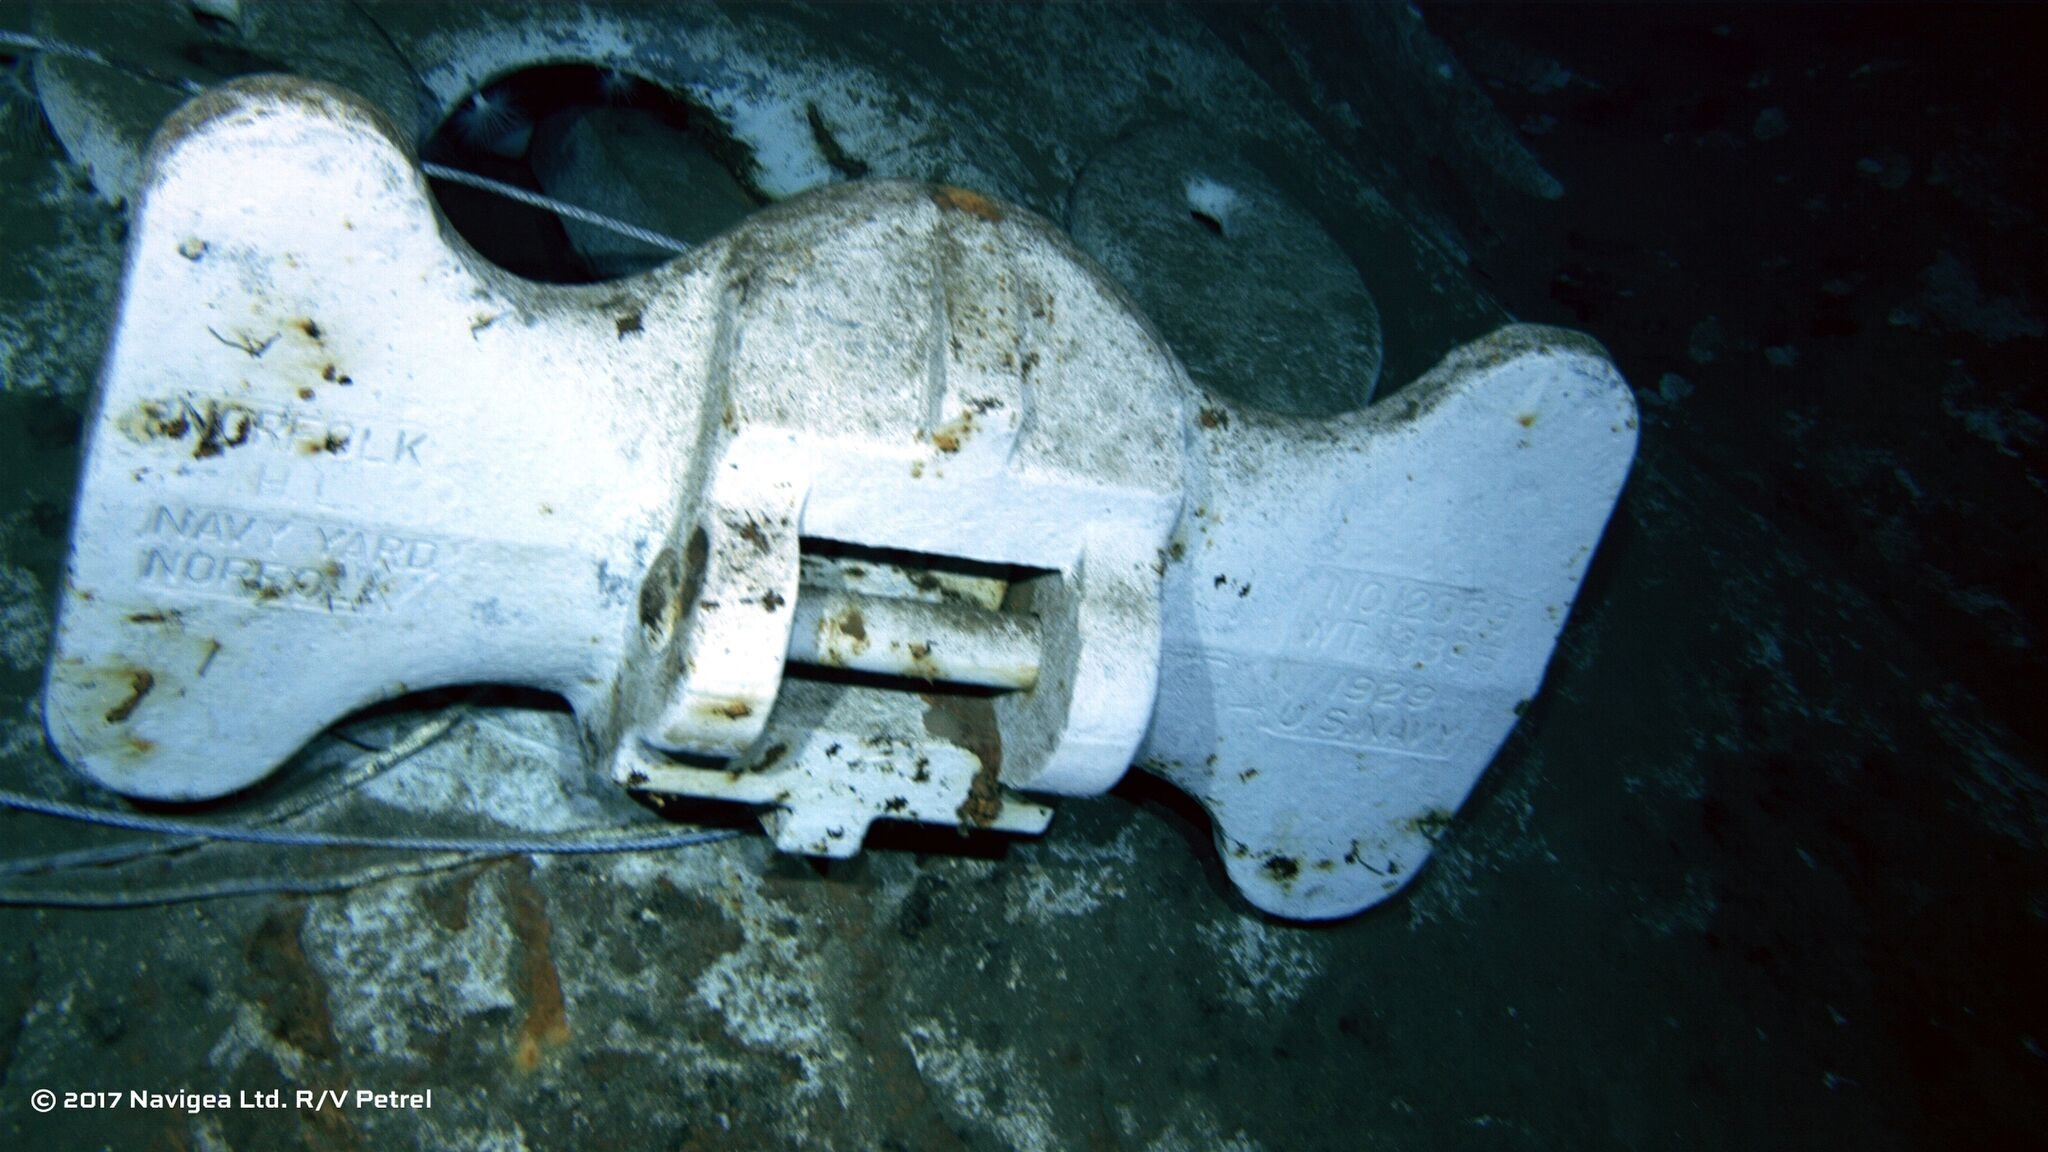 Wreckage from the USS Indianapolis was discovered on Aug. 18 by the expedition crew of Paul G. Allen's Research Vessel (R/V) Petrel.